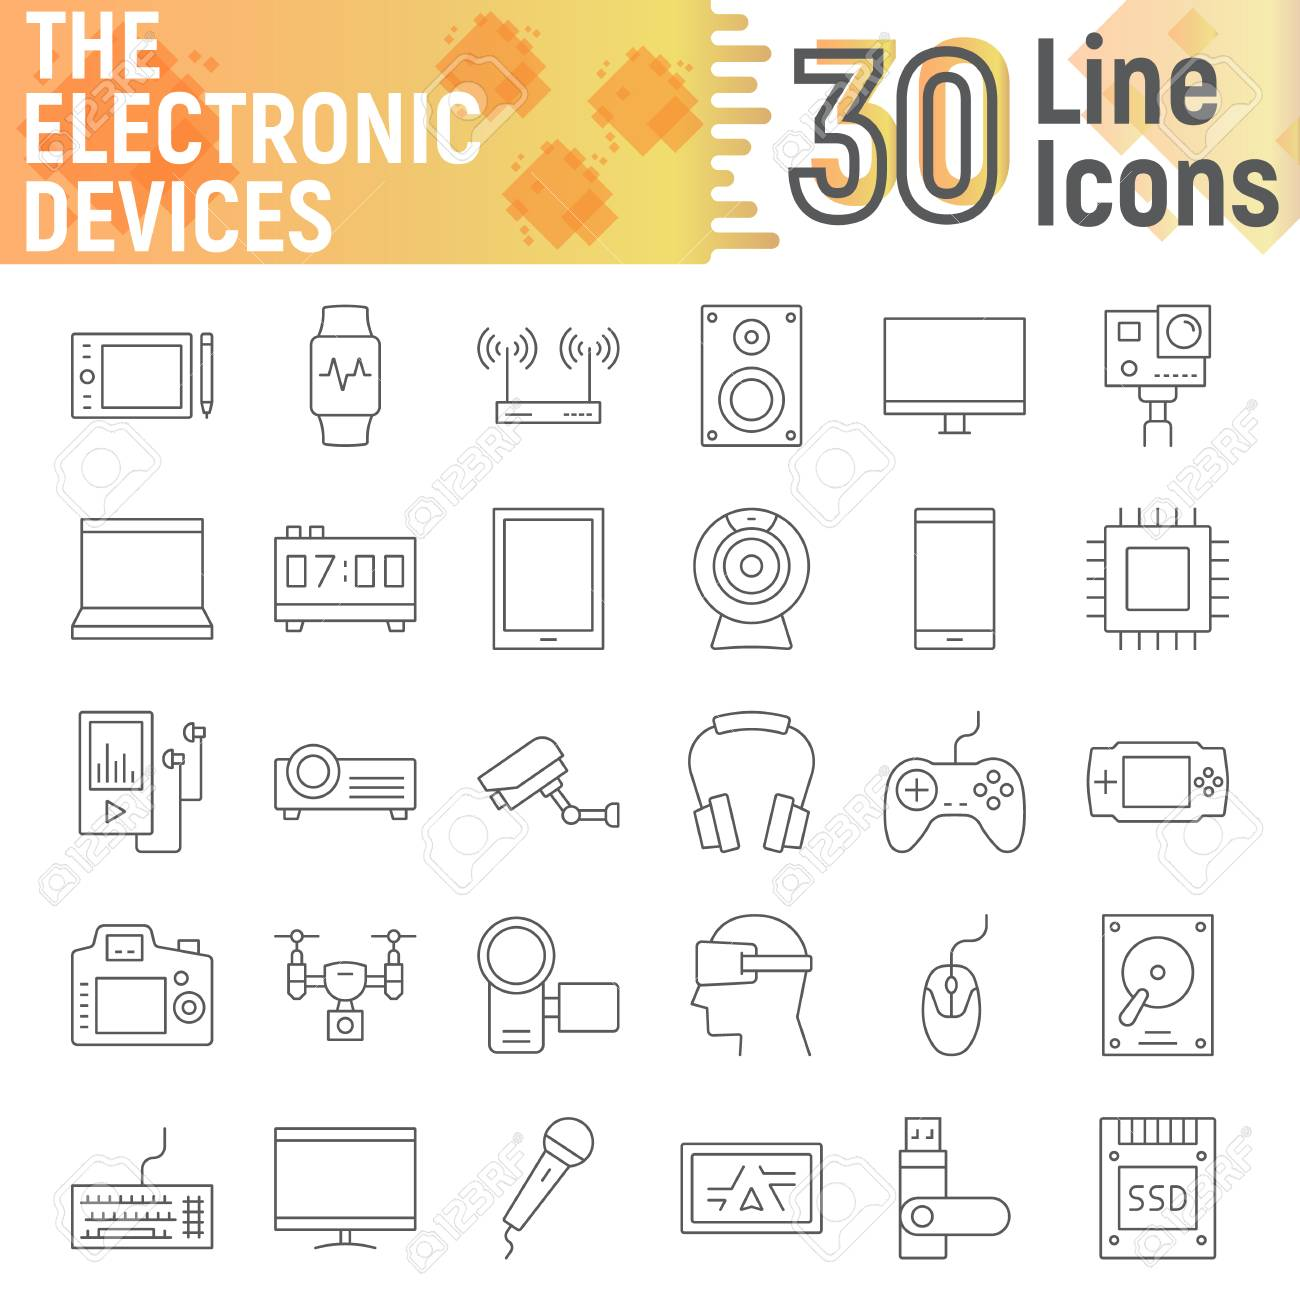 Electronic Devices Thin Line Icon Set Media Symbols Collection